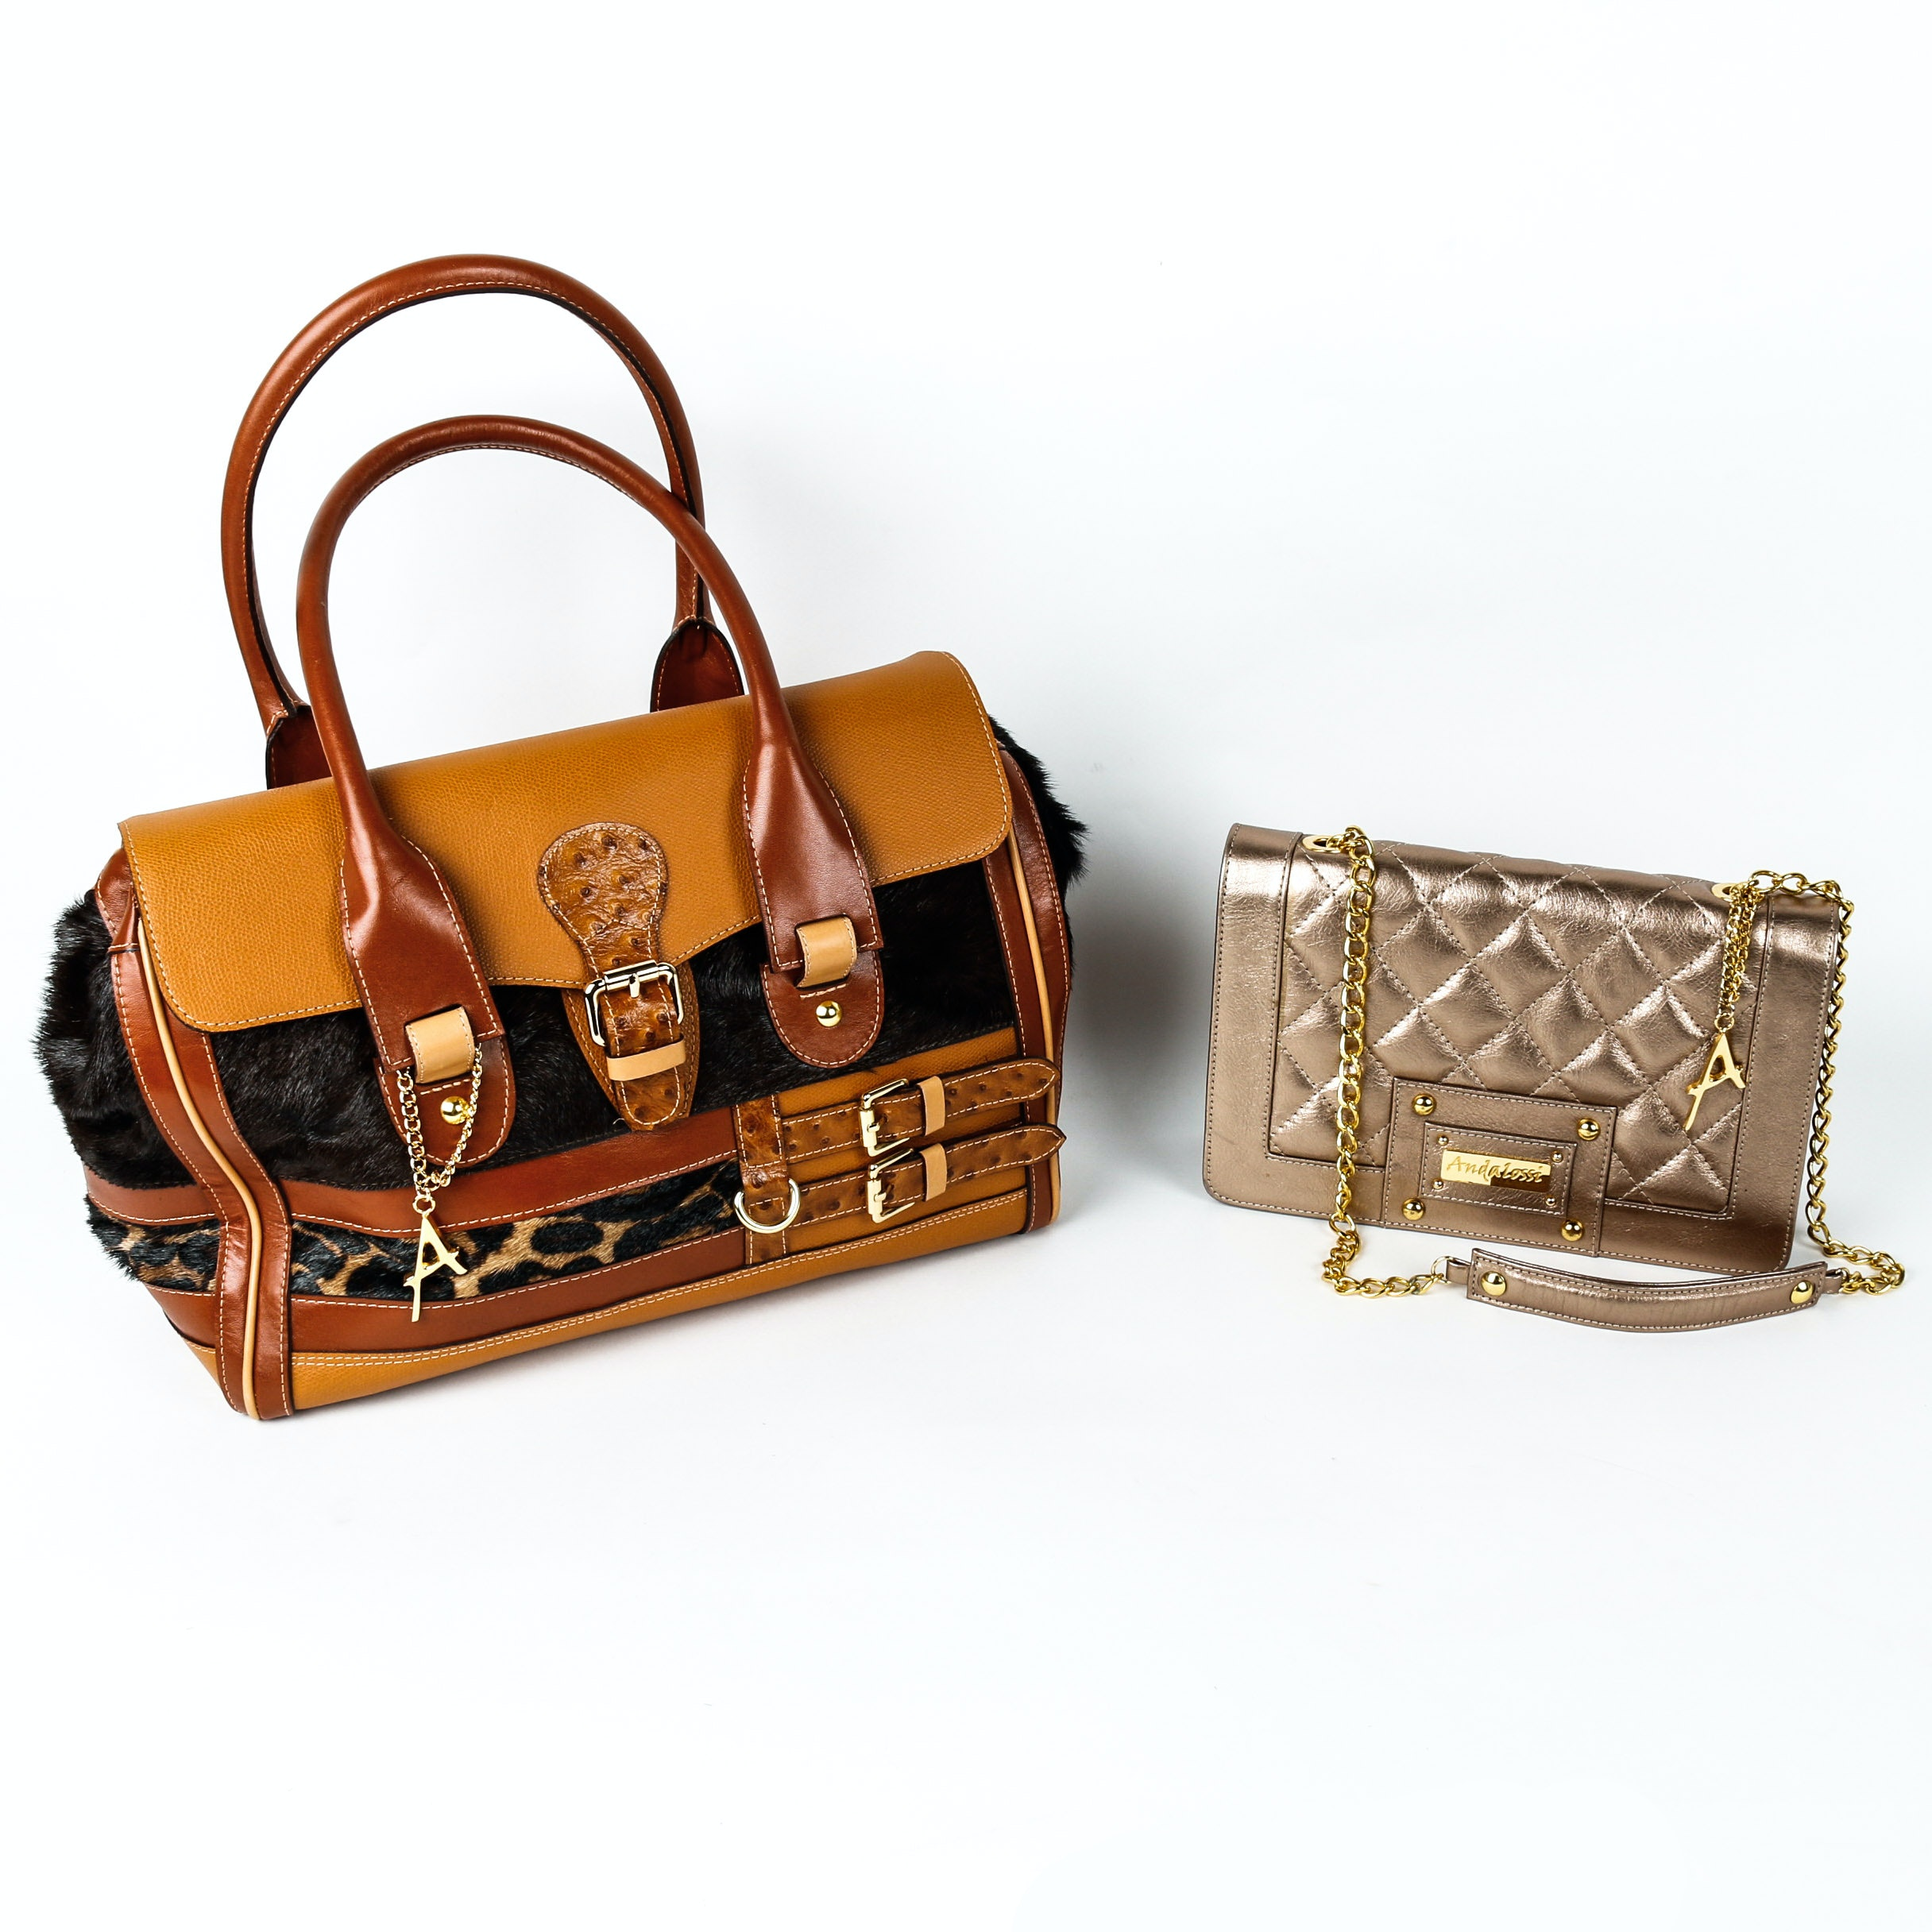 Two Andalossi Leather Handbags : EBTH